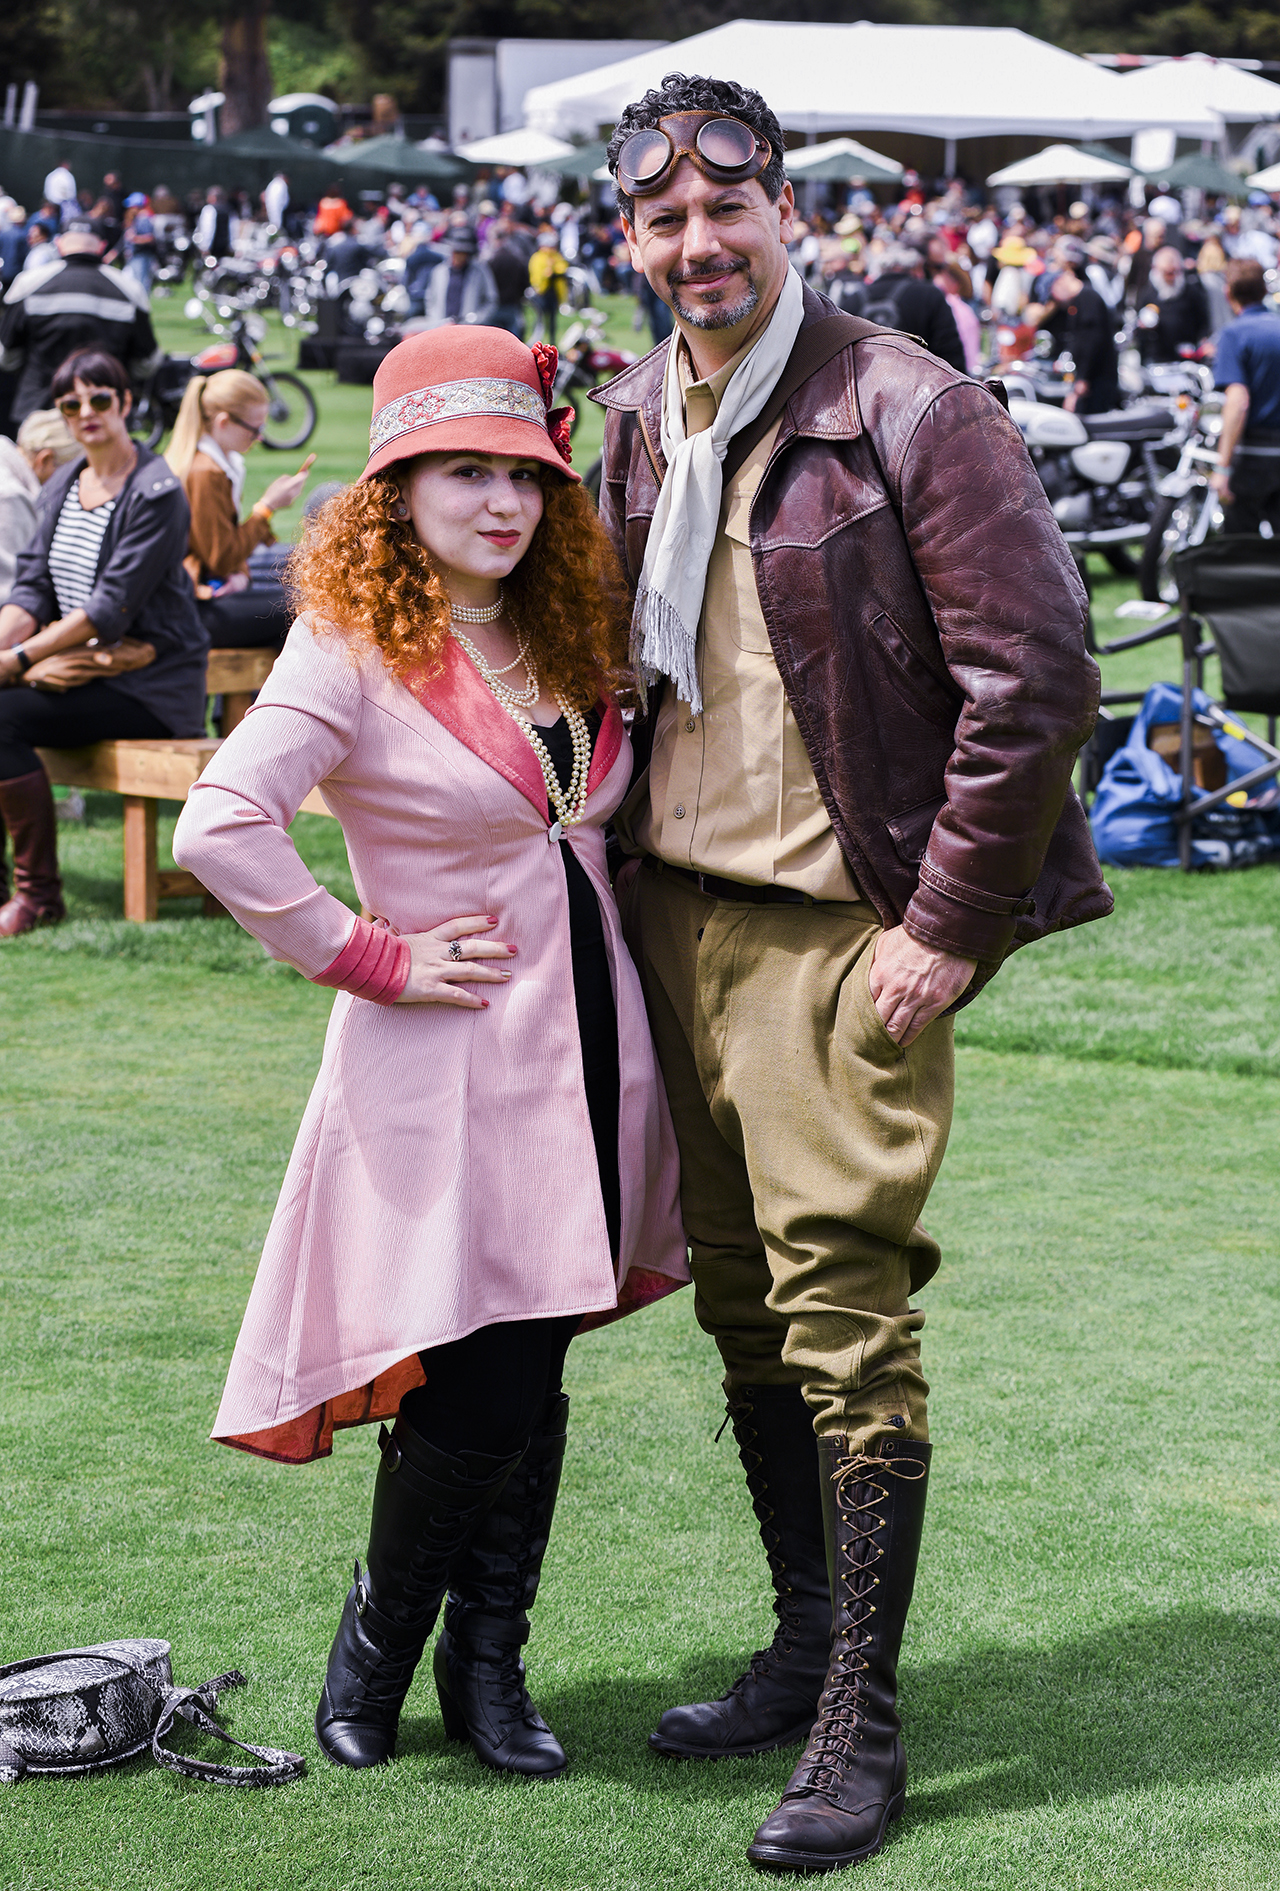 Winners of the Rustmag most stylish couple. Peter Alau and Debora Kaplan put everyone to shame with their vintage sartorial style.